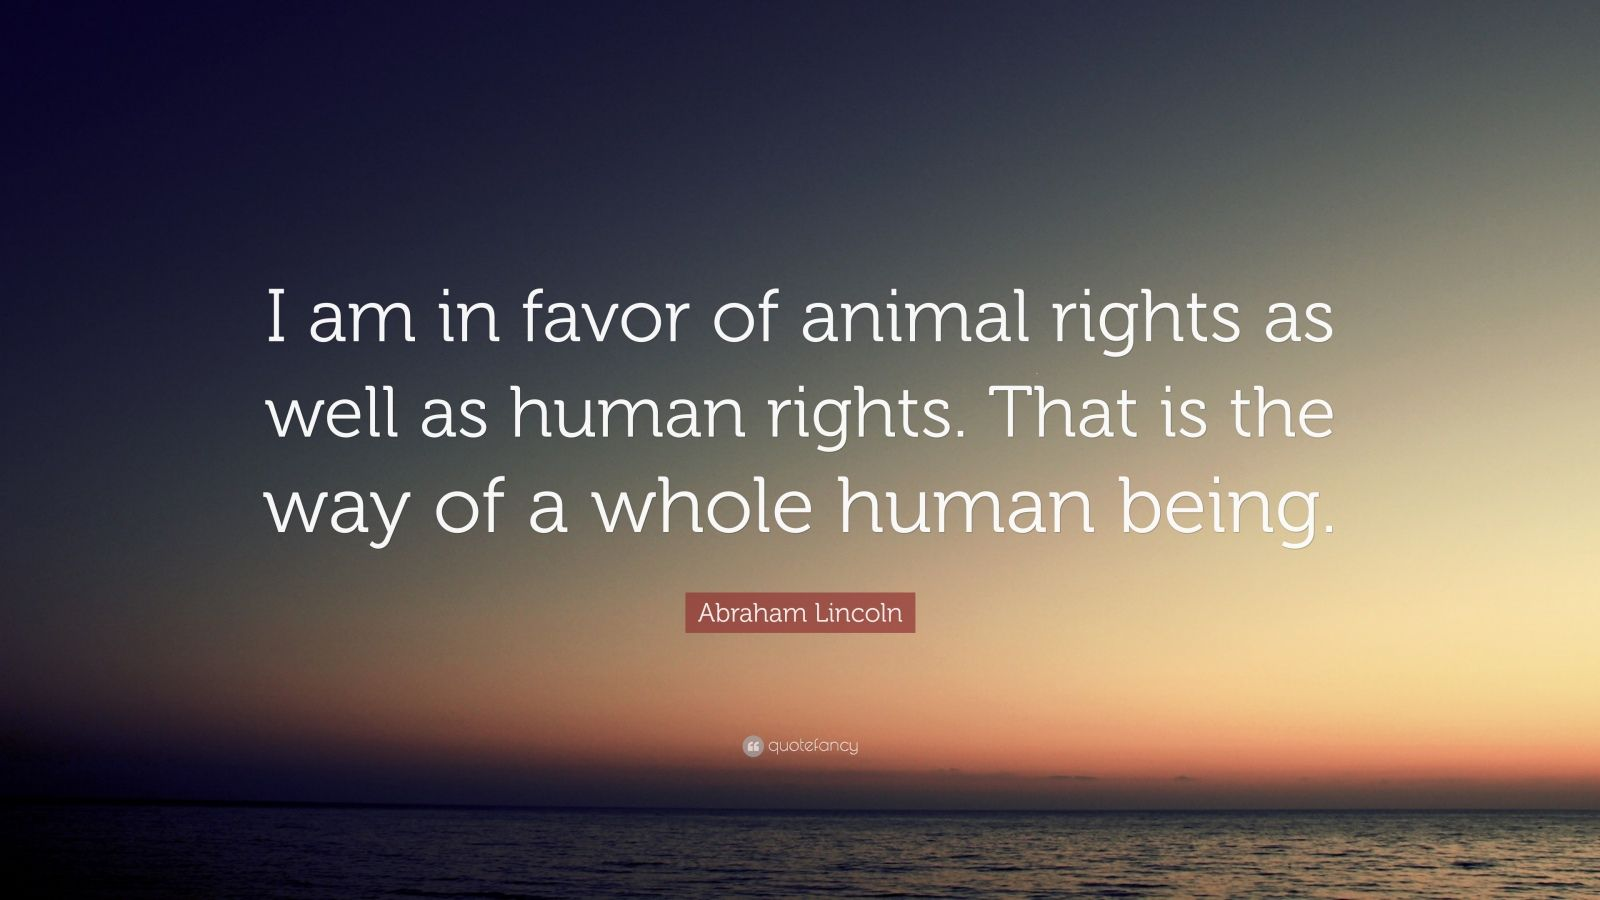 abraham lincoln quote   u201ci am in favor of animal rights as